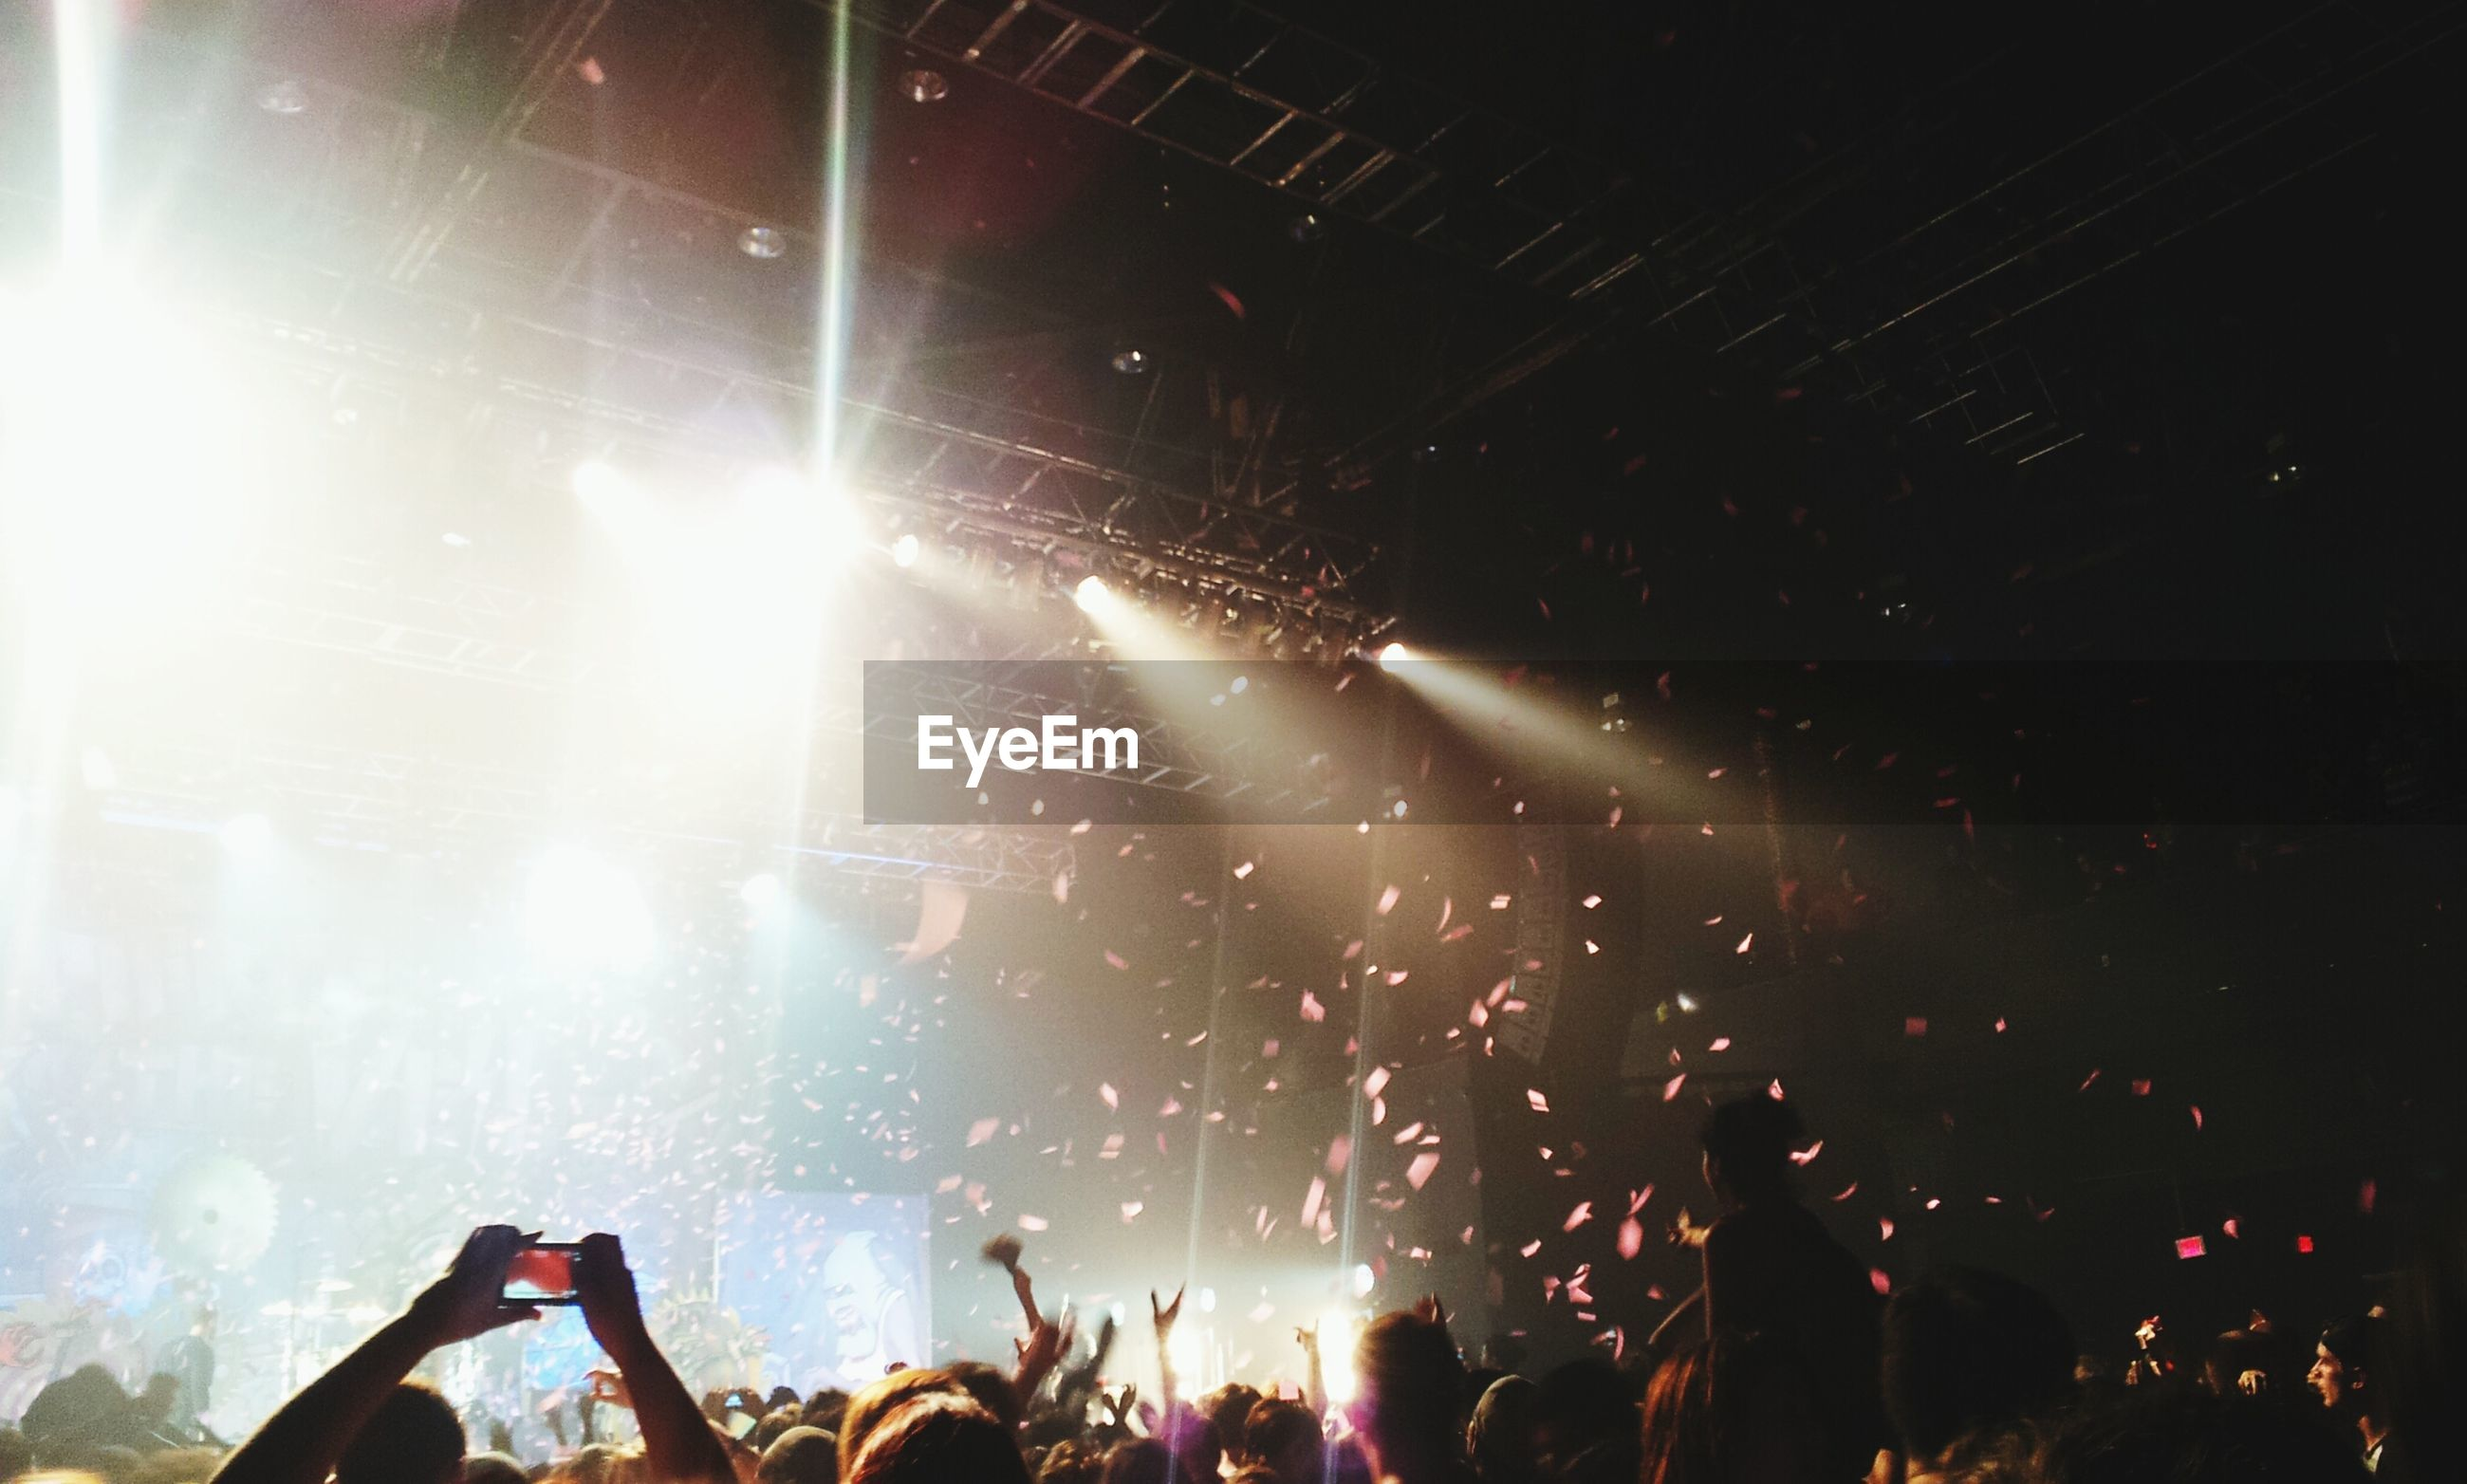 arts culture and entertainment, large group of people, event, lifestyles, illuminated, enjoyment, leisure activity, men, music, night, crowd, performance, music festival, nightlife, fun, popular music concert, stage - performance space, person, excitement